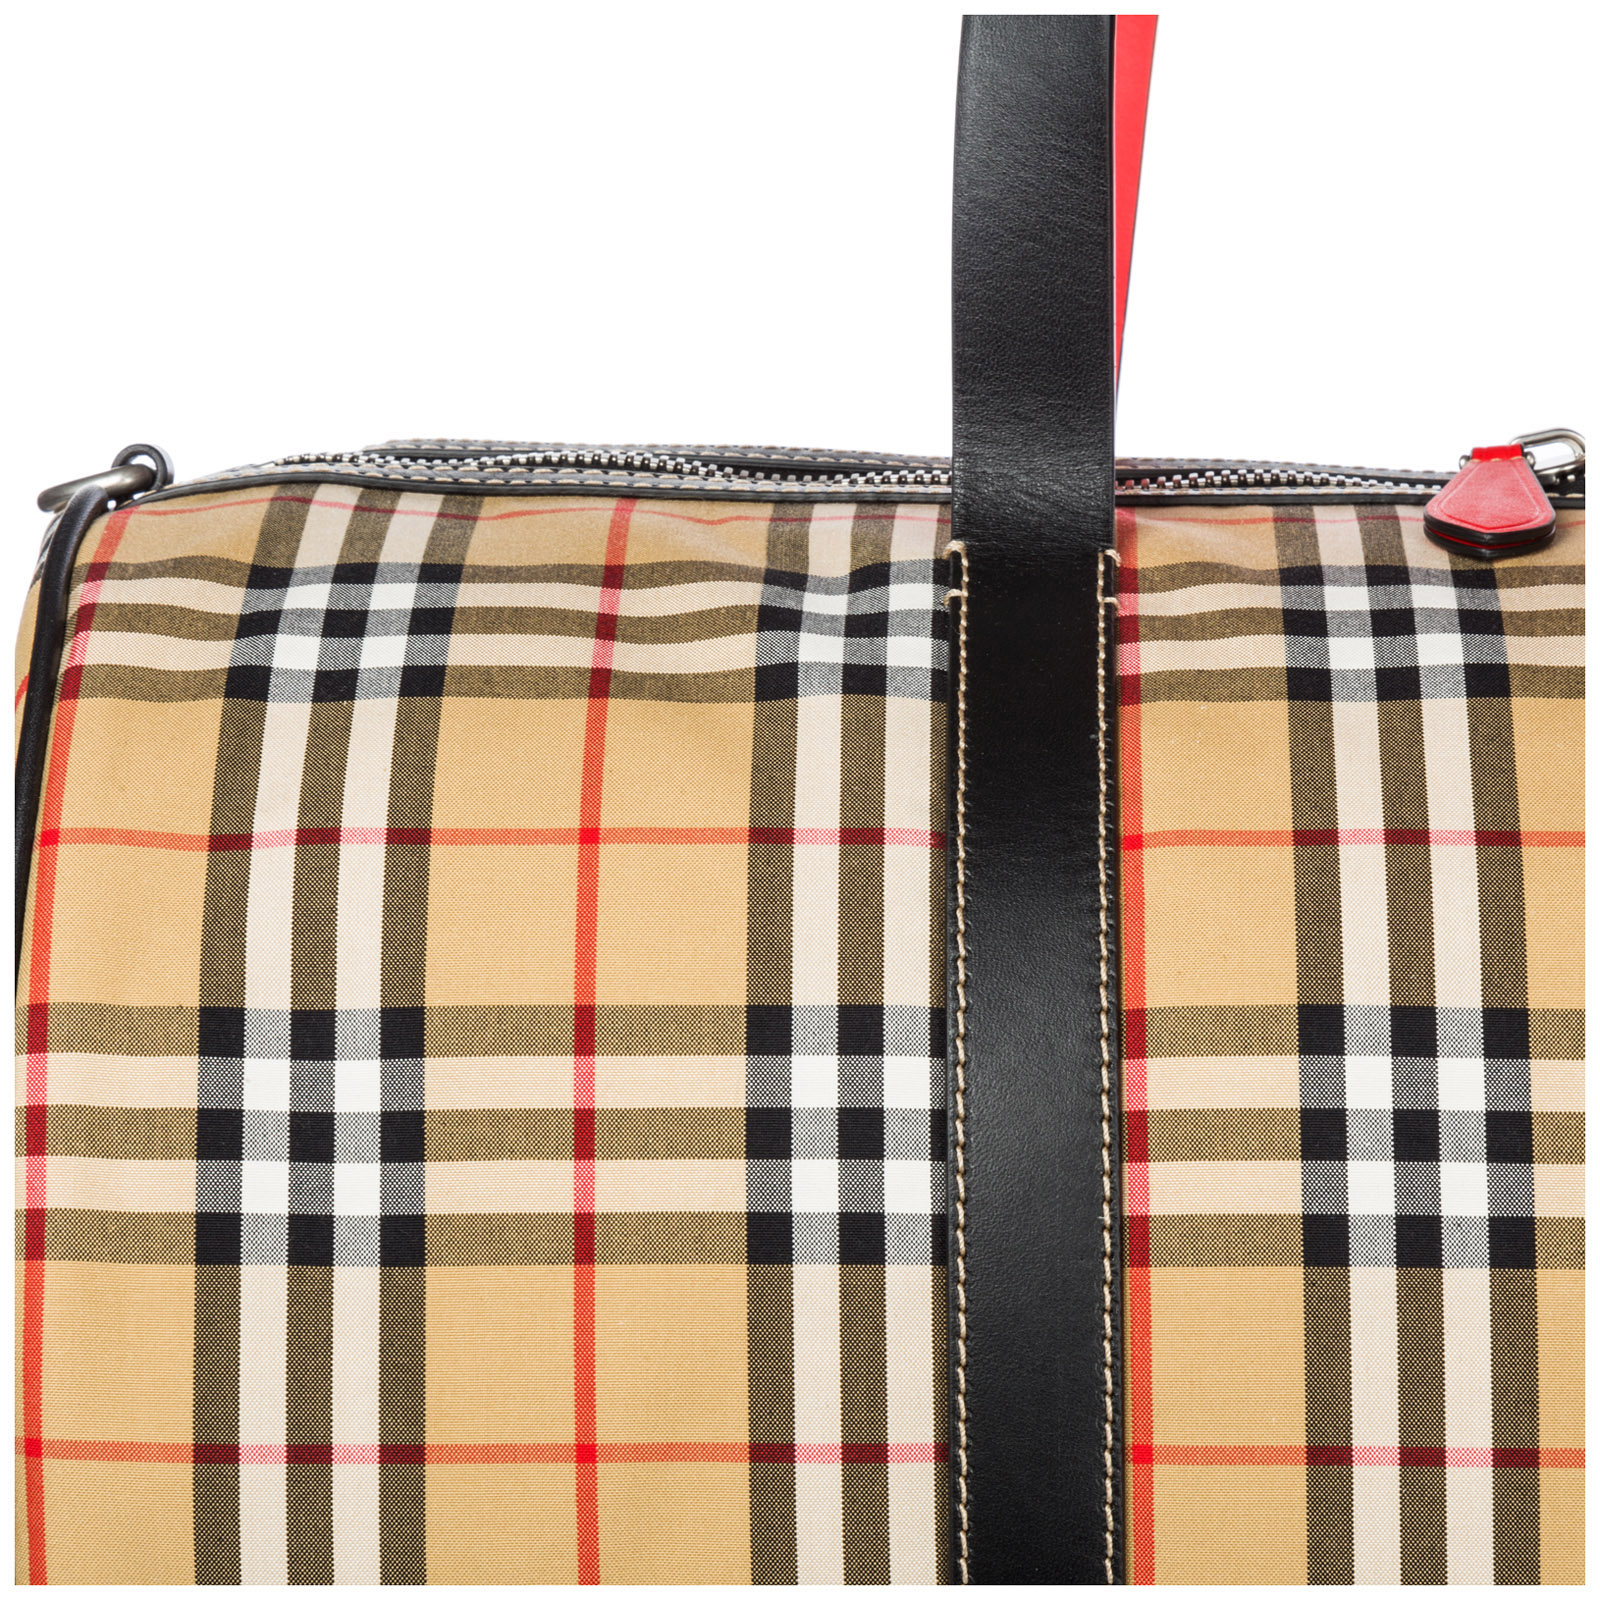 9b4c209579af Duffle bag Burberry Kennedy 40742791 military red